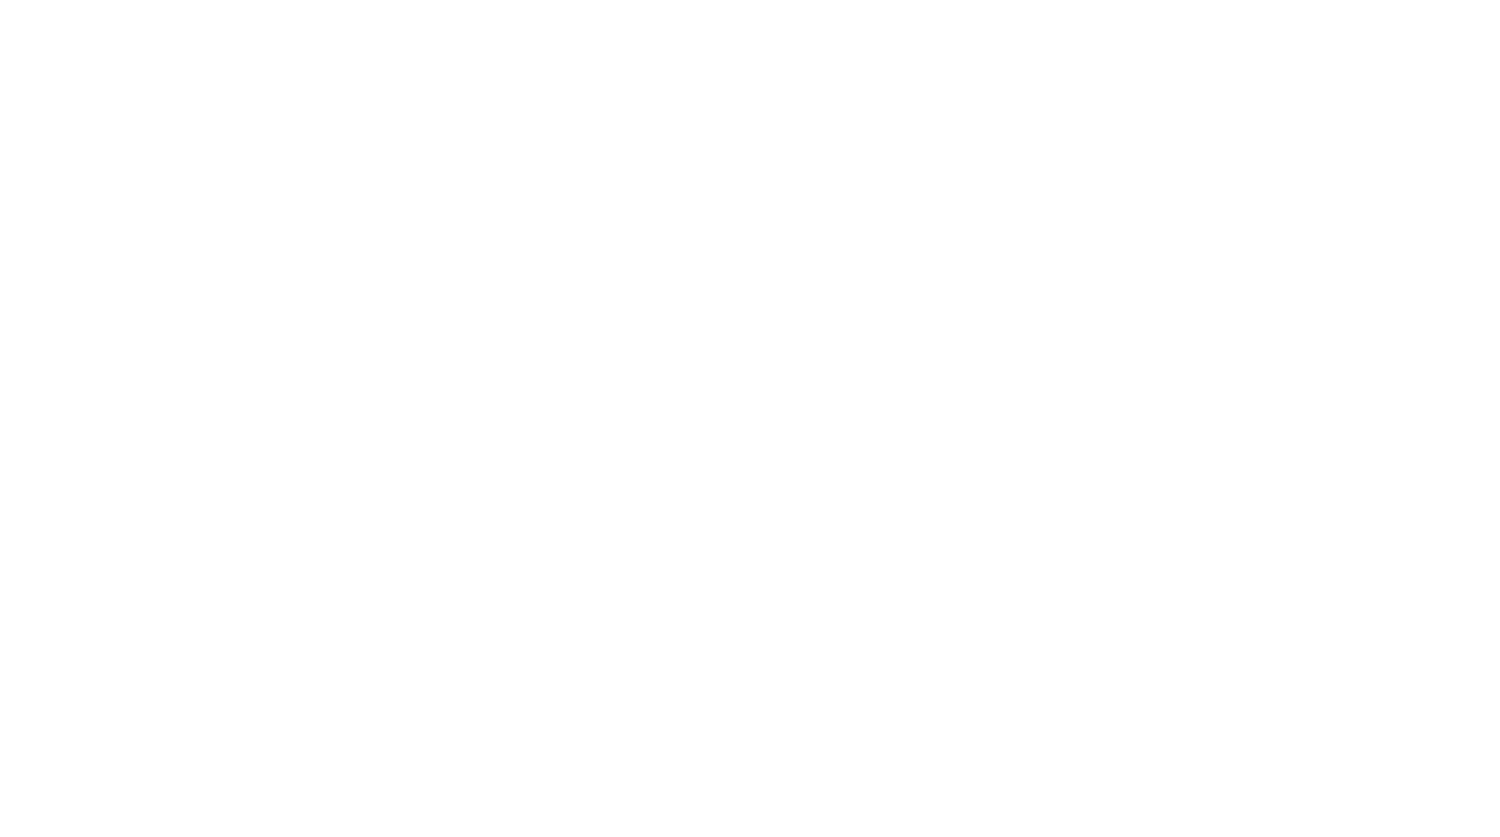 Terrigal Bluewater Fishing Charters